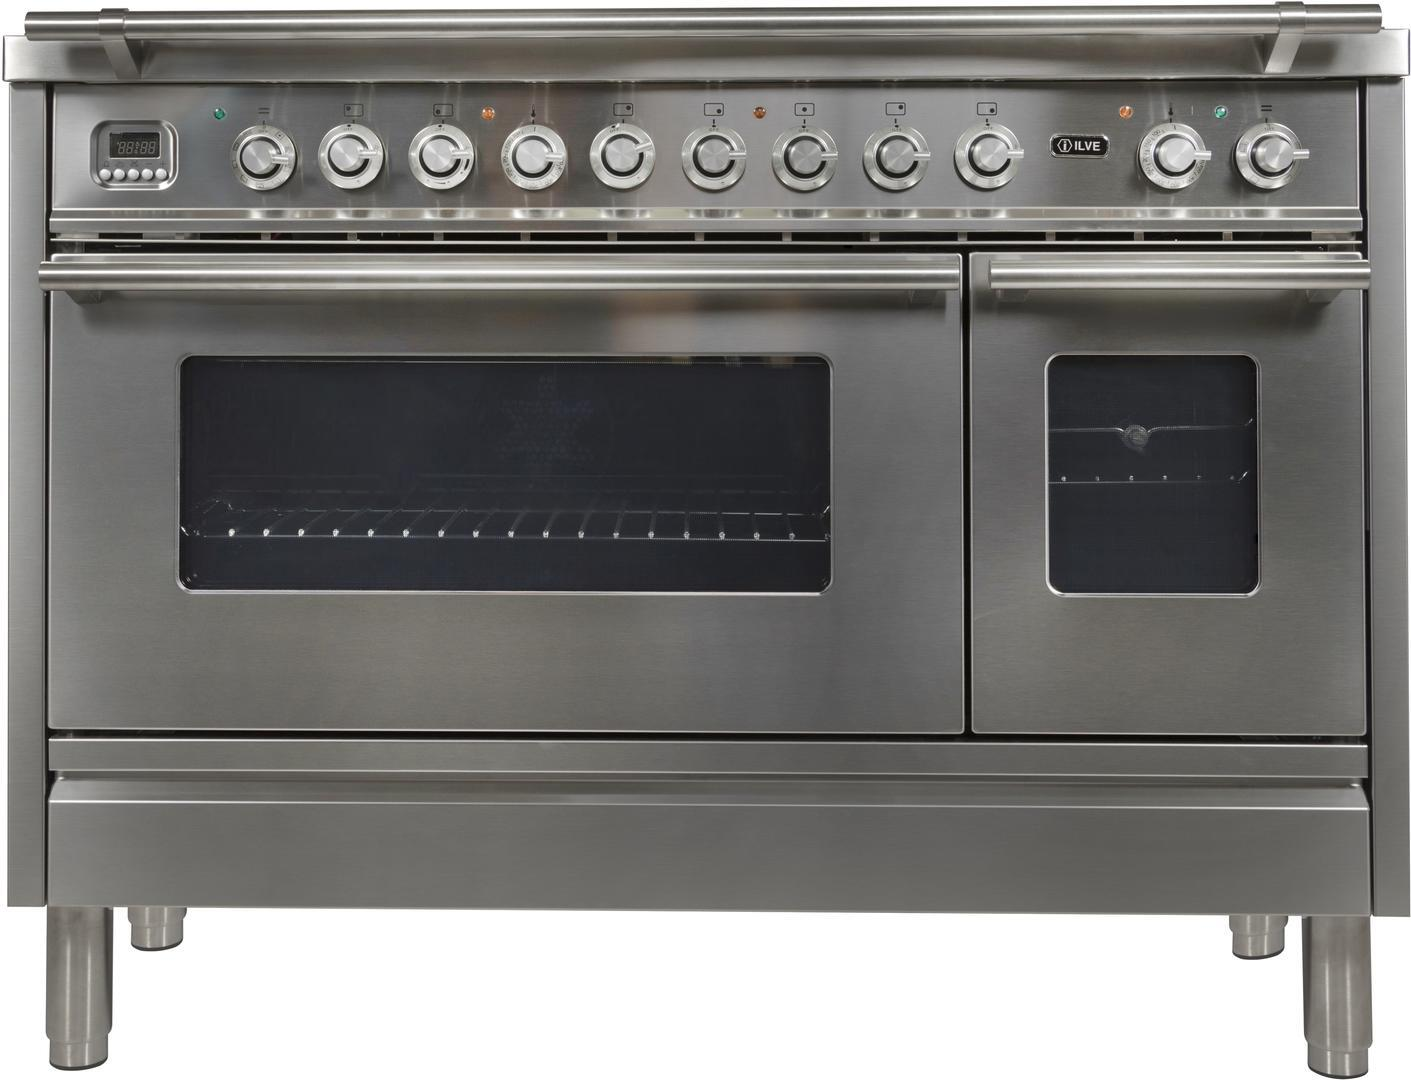 Ilve Professional Plus UPW120FDMPILP Freestanding Dual Fuel Range Stainless Steel, UPW120FDMPILP Front View